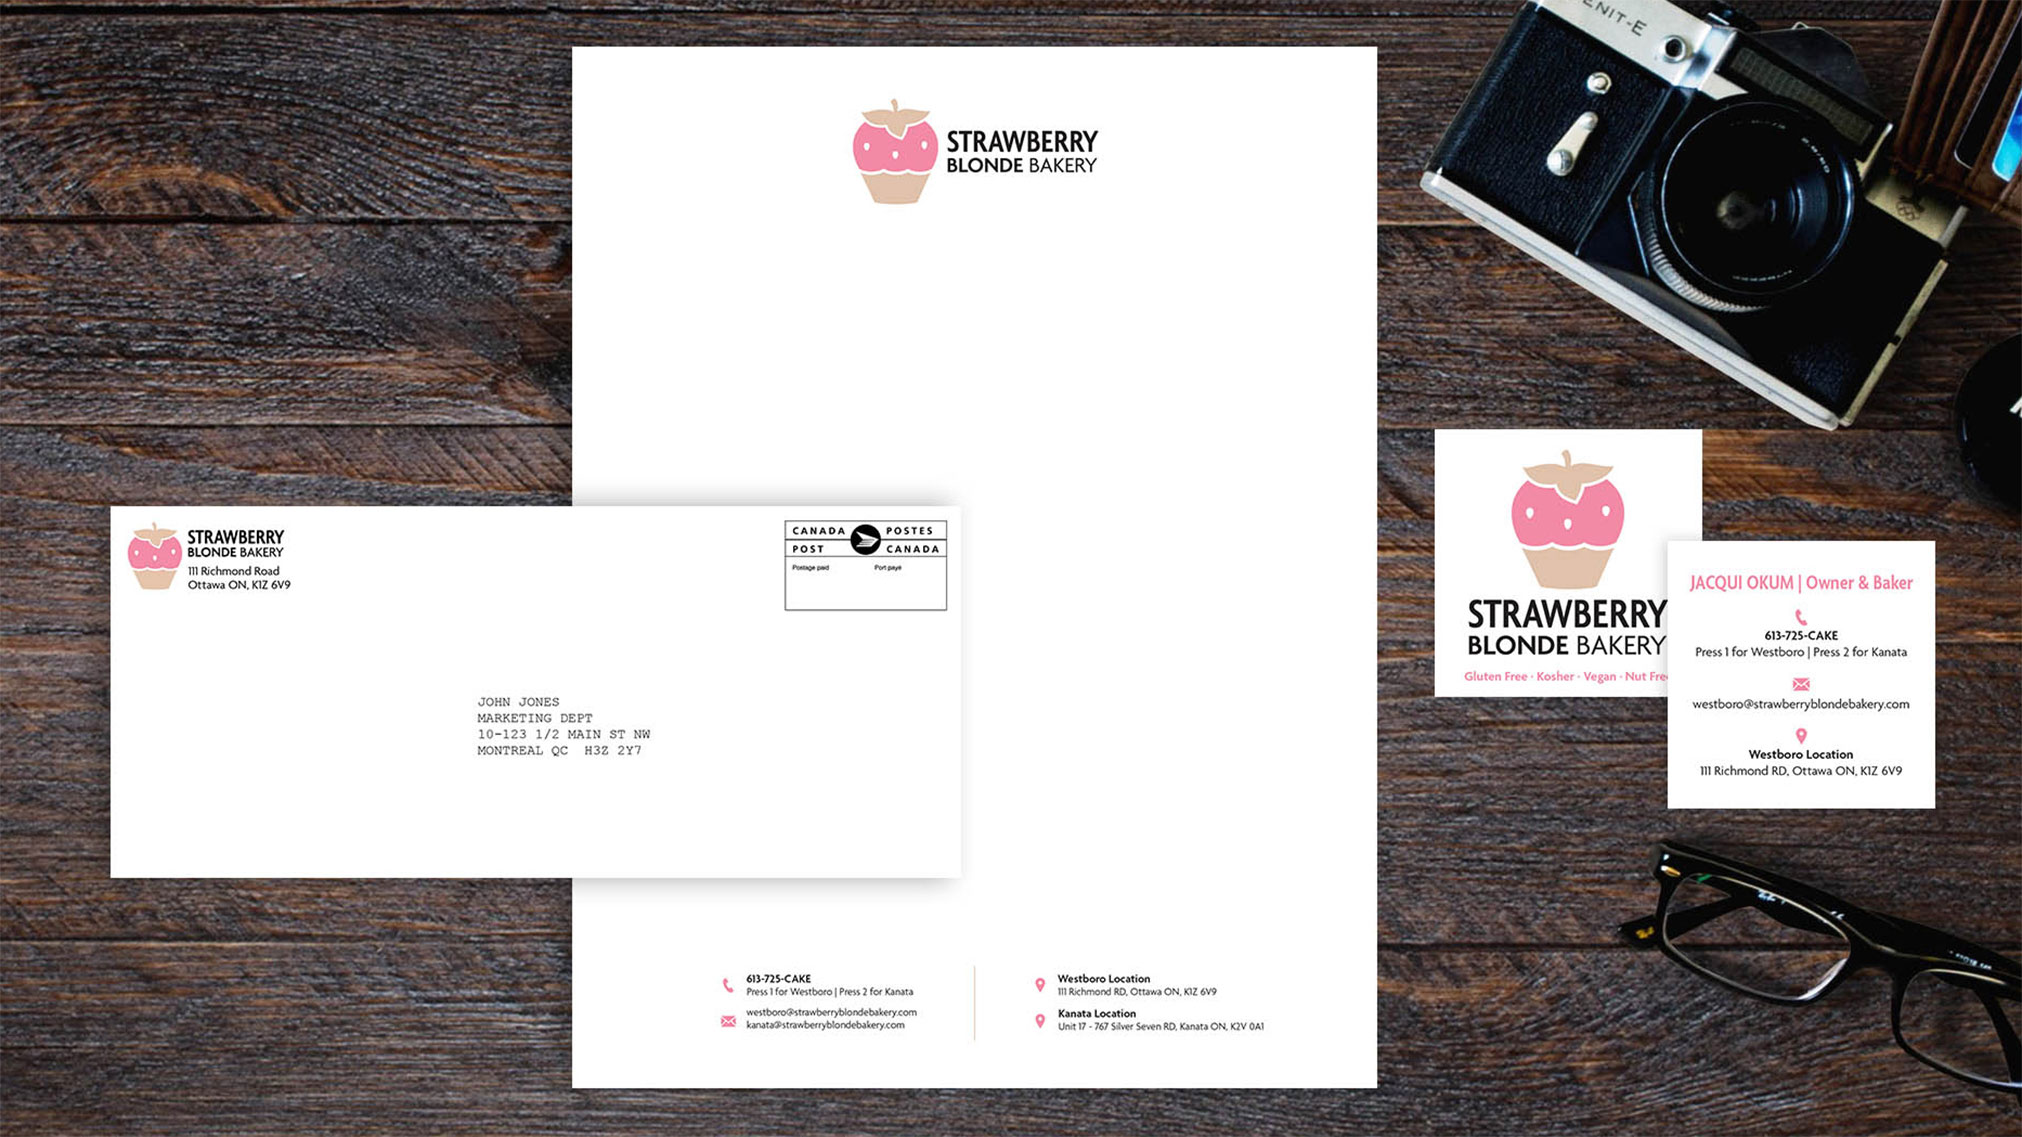 This is a project of mine where I was challenged to remake an existing logo and brand. I reached out to Strawberry Blonde and began to research and sketch ideas to better represent their brand.